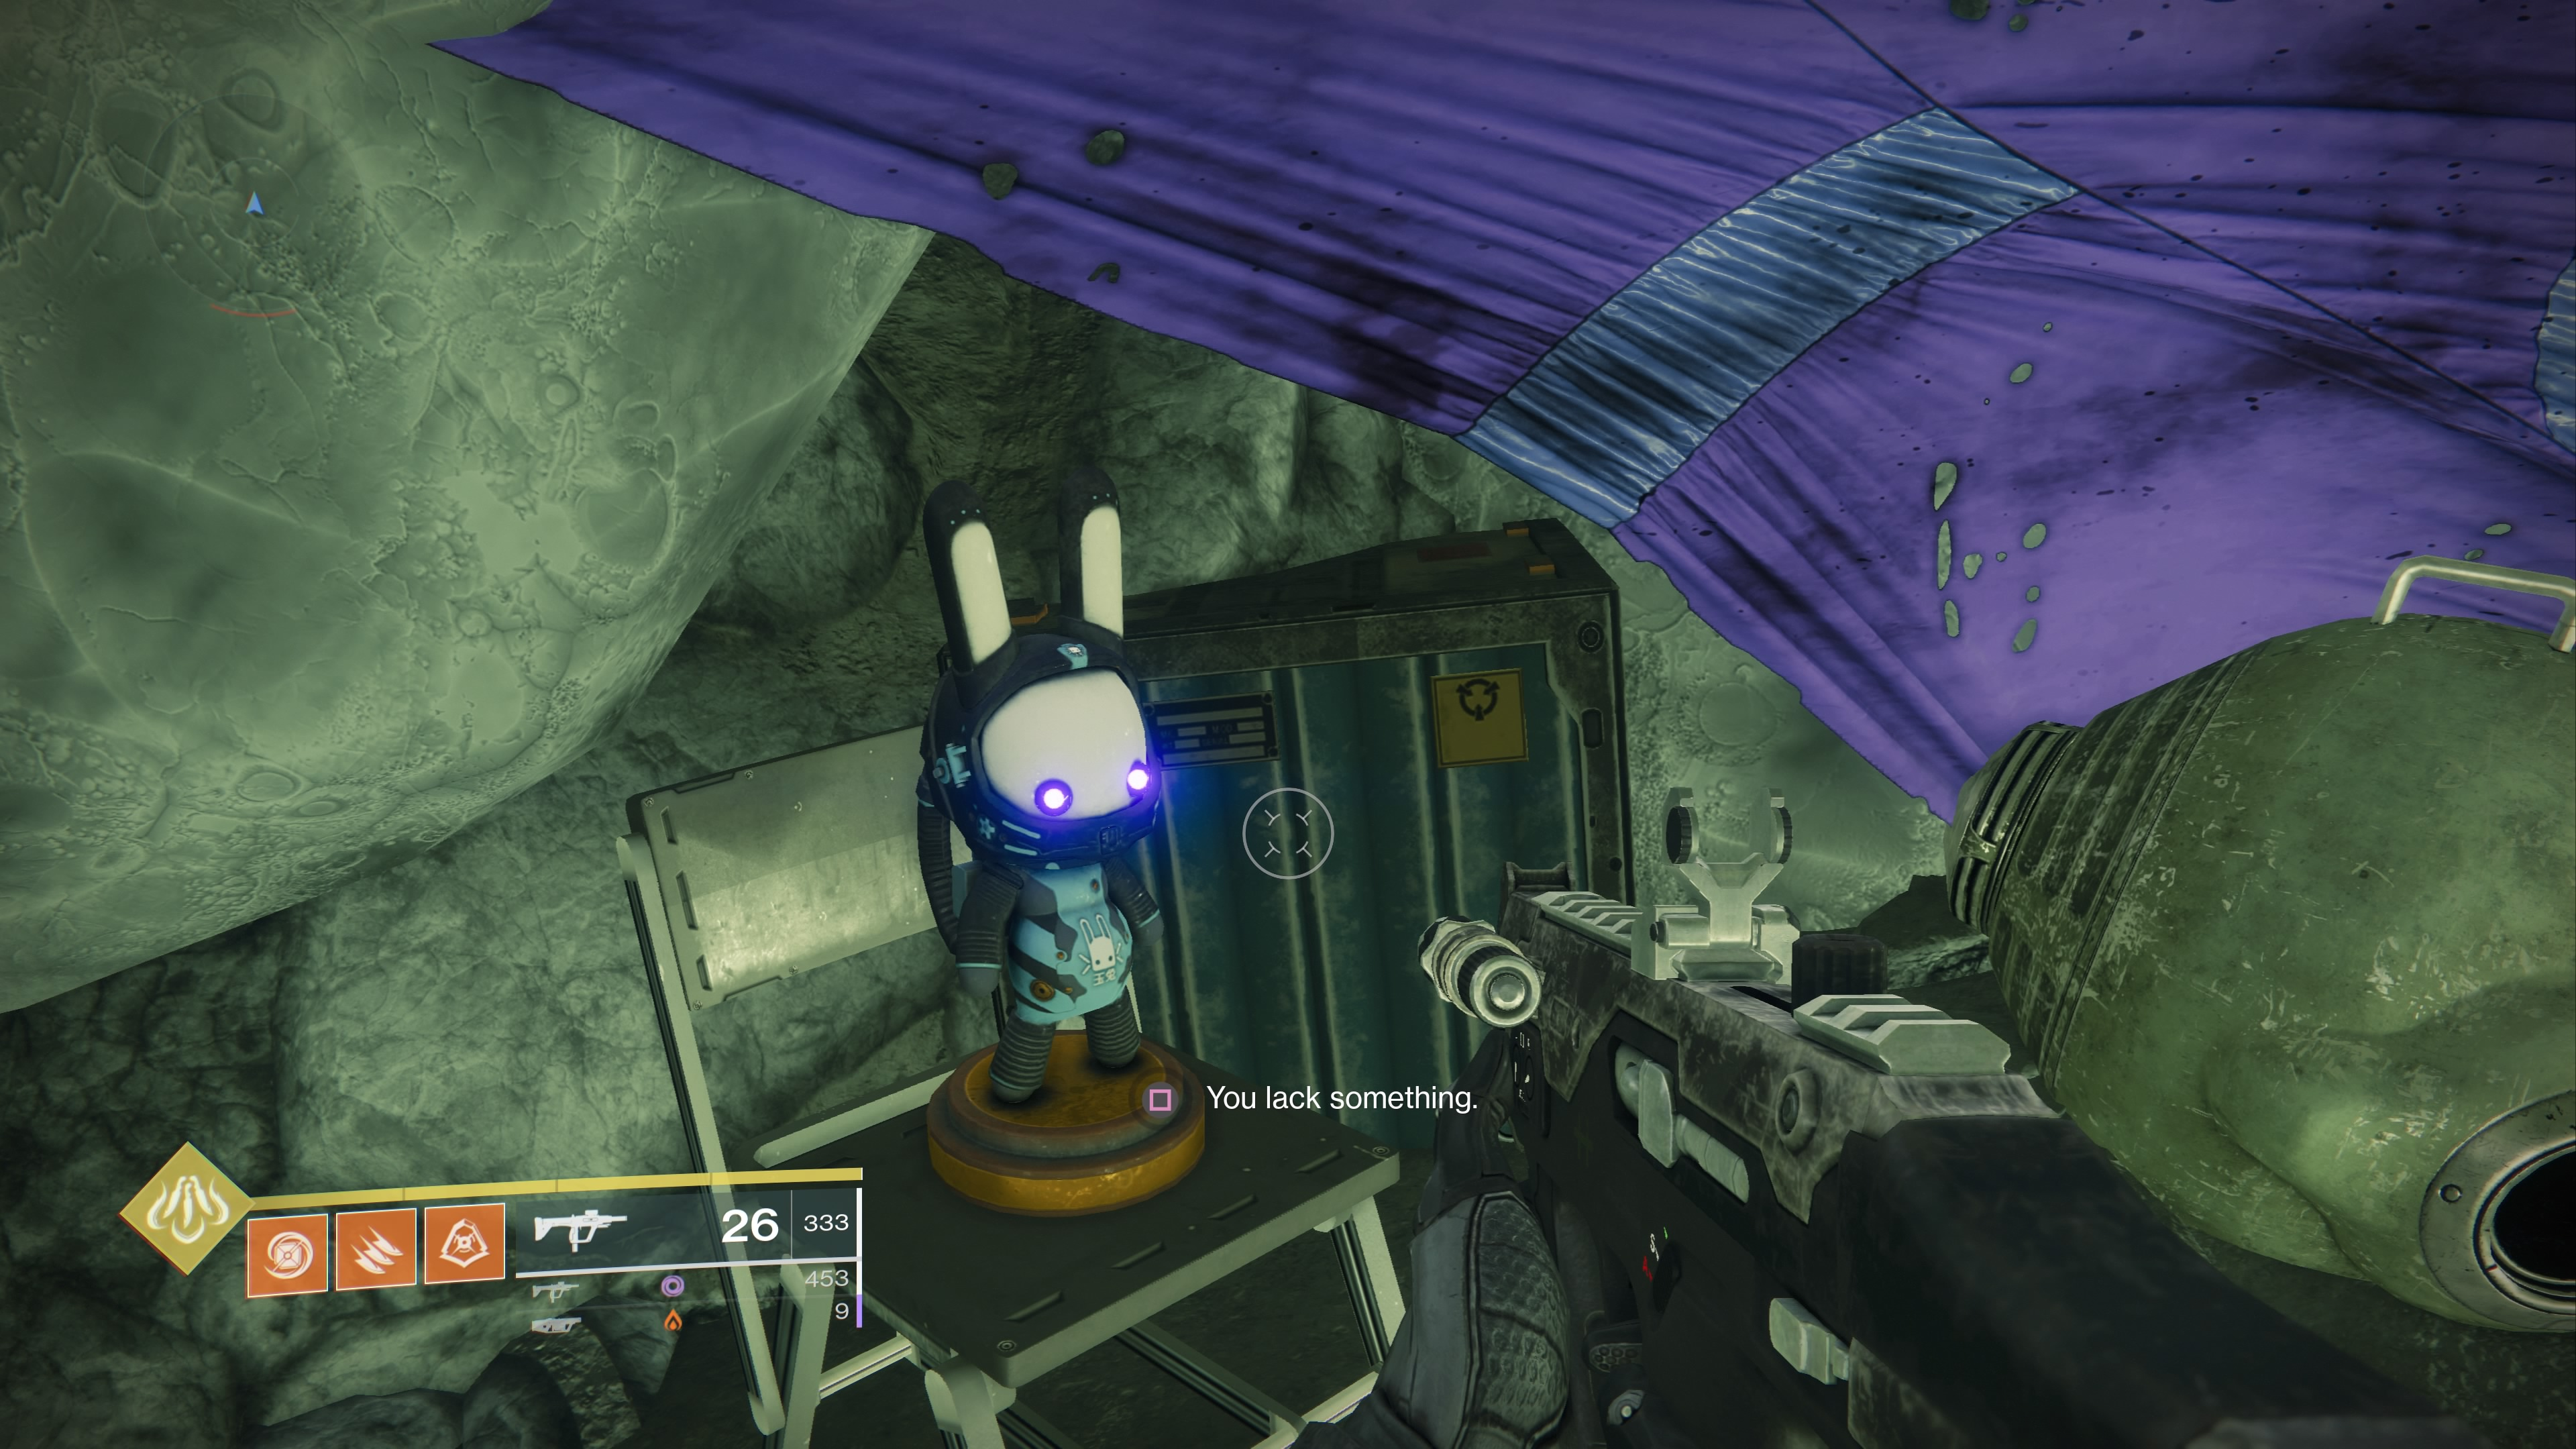 Destiny 2 Shadowkeep Here S What Those Weird Bunny Statues Do You Lack Something Guide Gameranx One of those is connected to a small rice cake drop that you'll notice from time to time. those weird bunny statues do